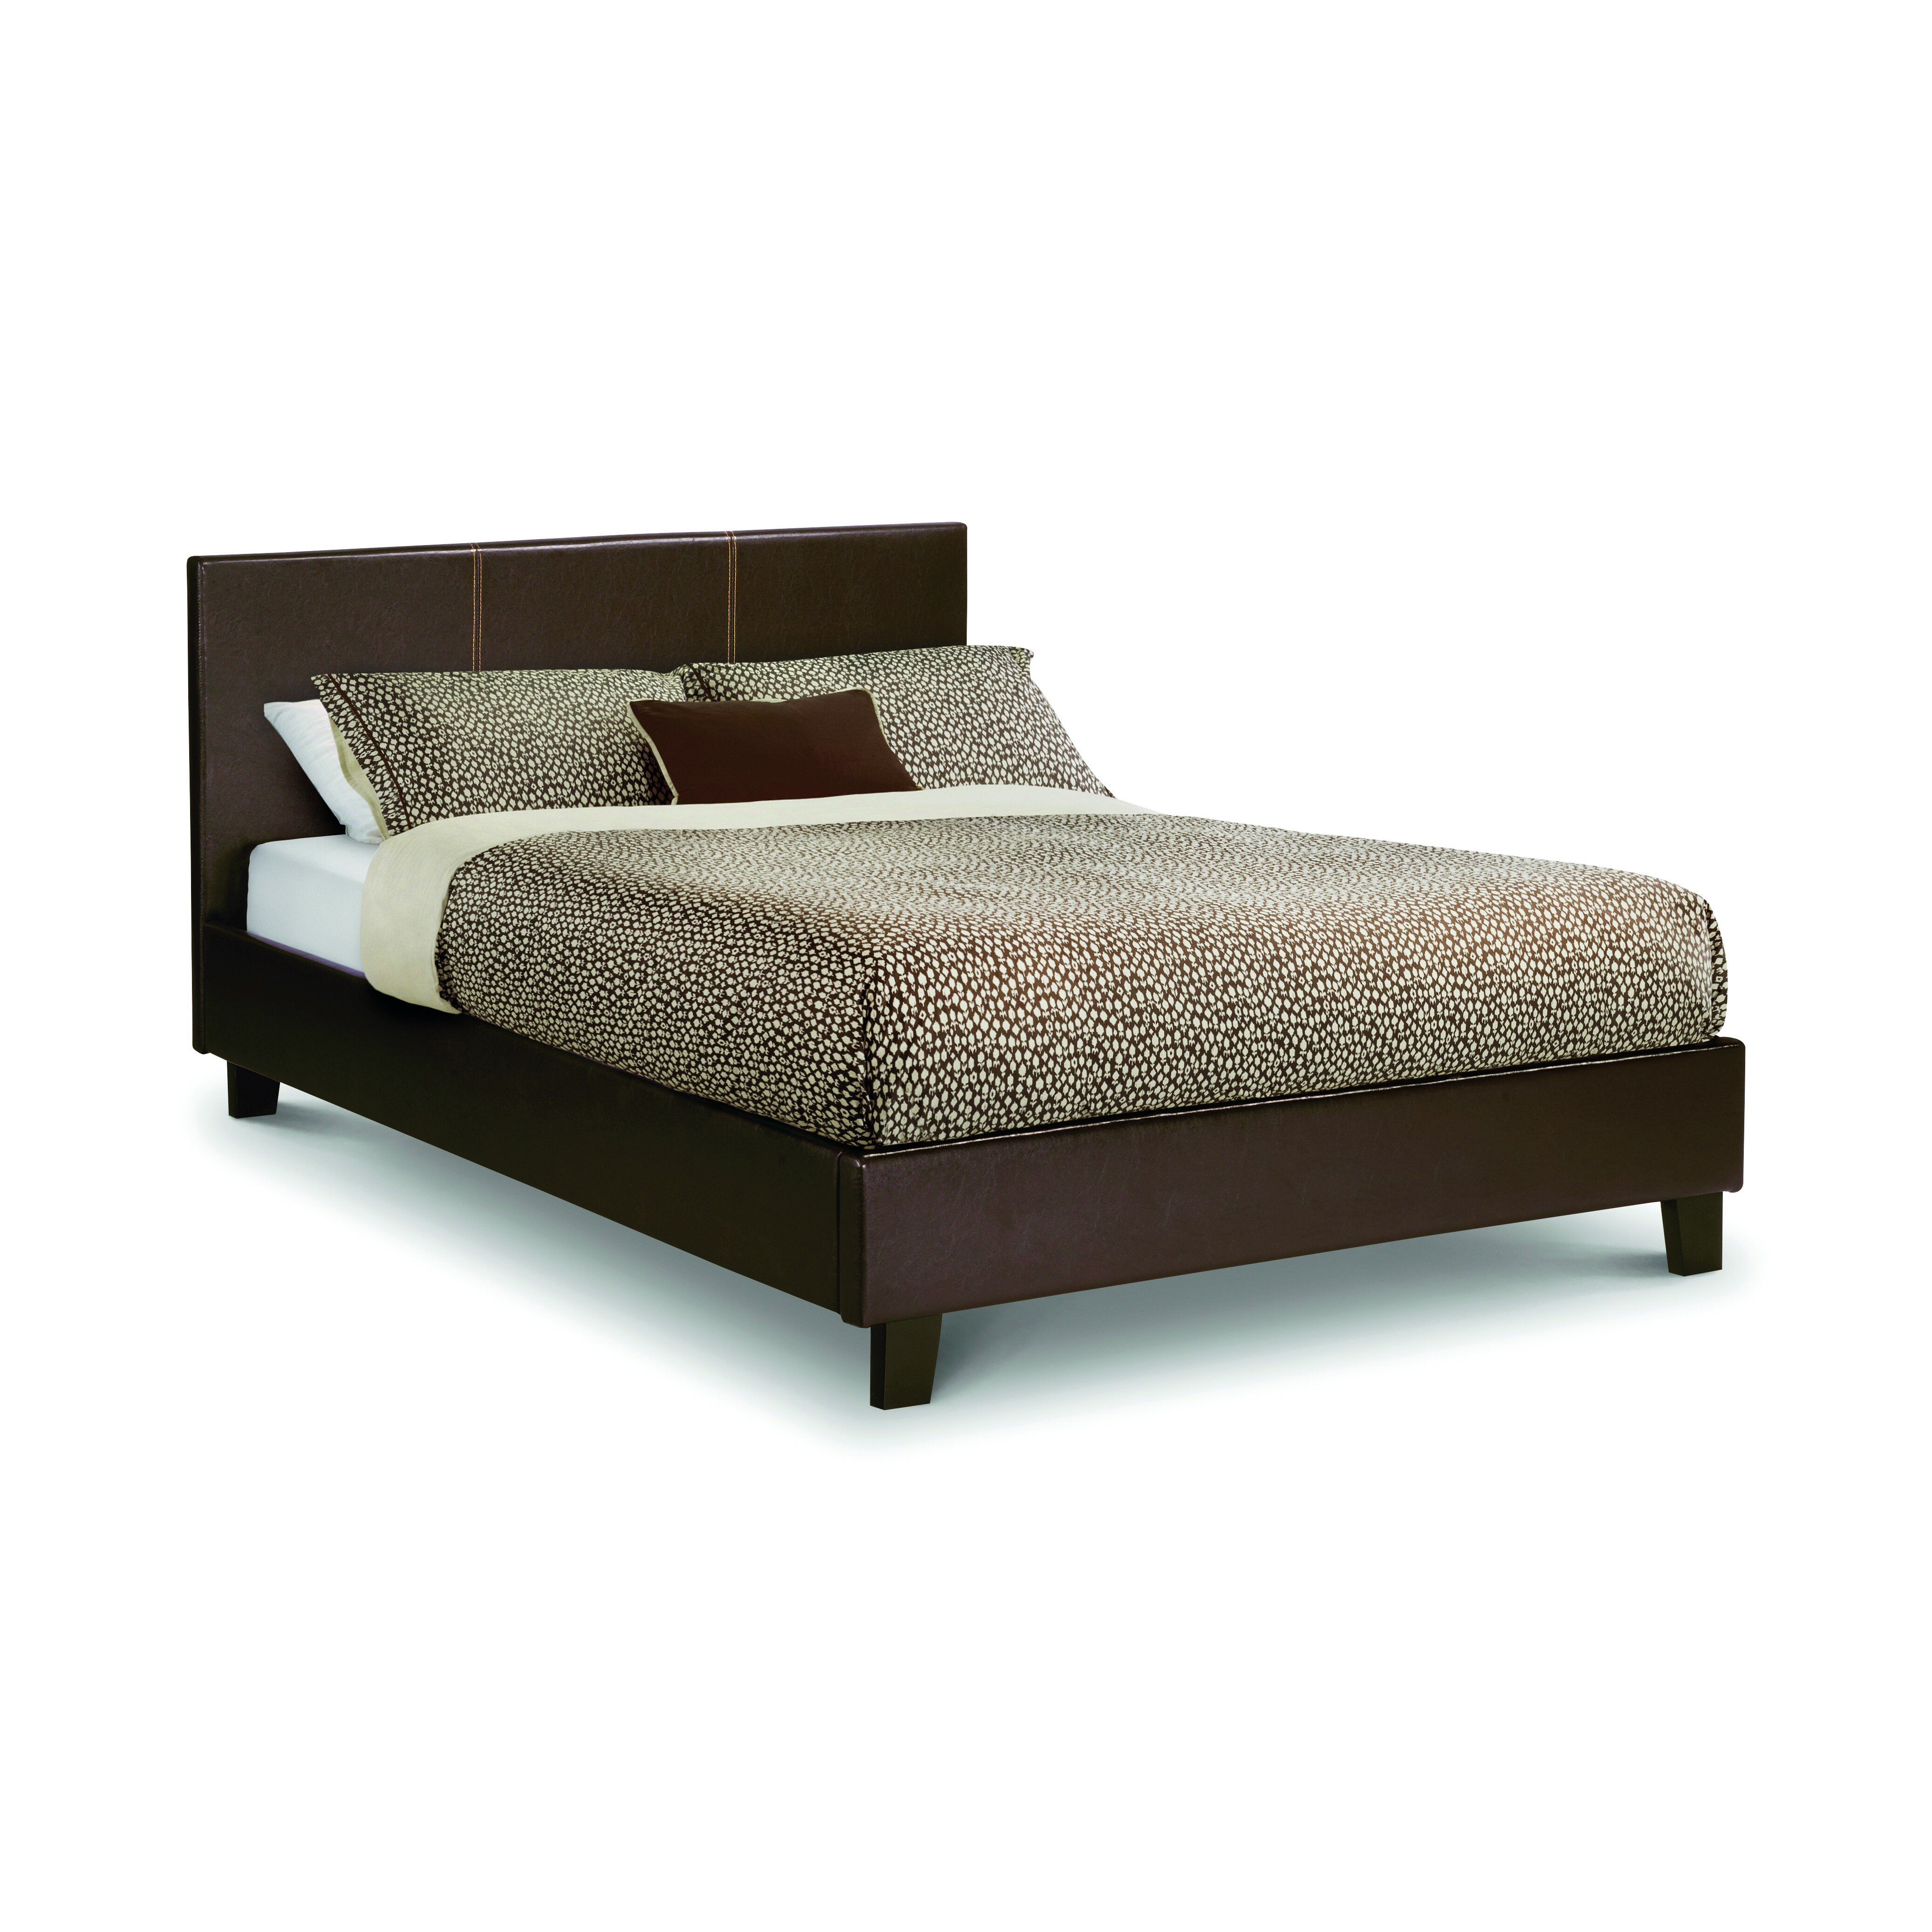 Three posts marbletown upholstered bed frame reviews for Upholstered bed frame